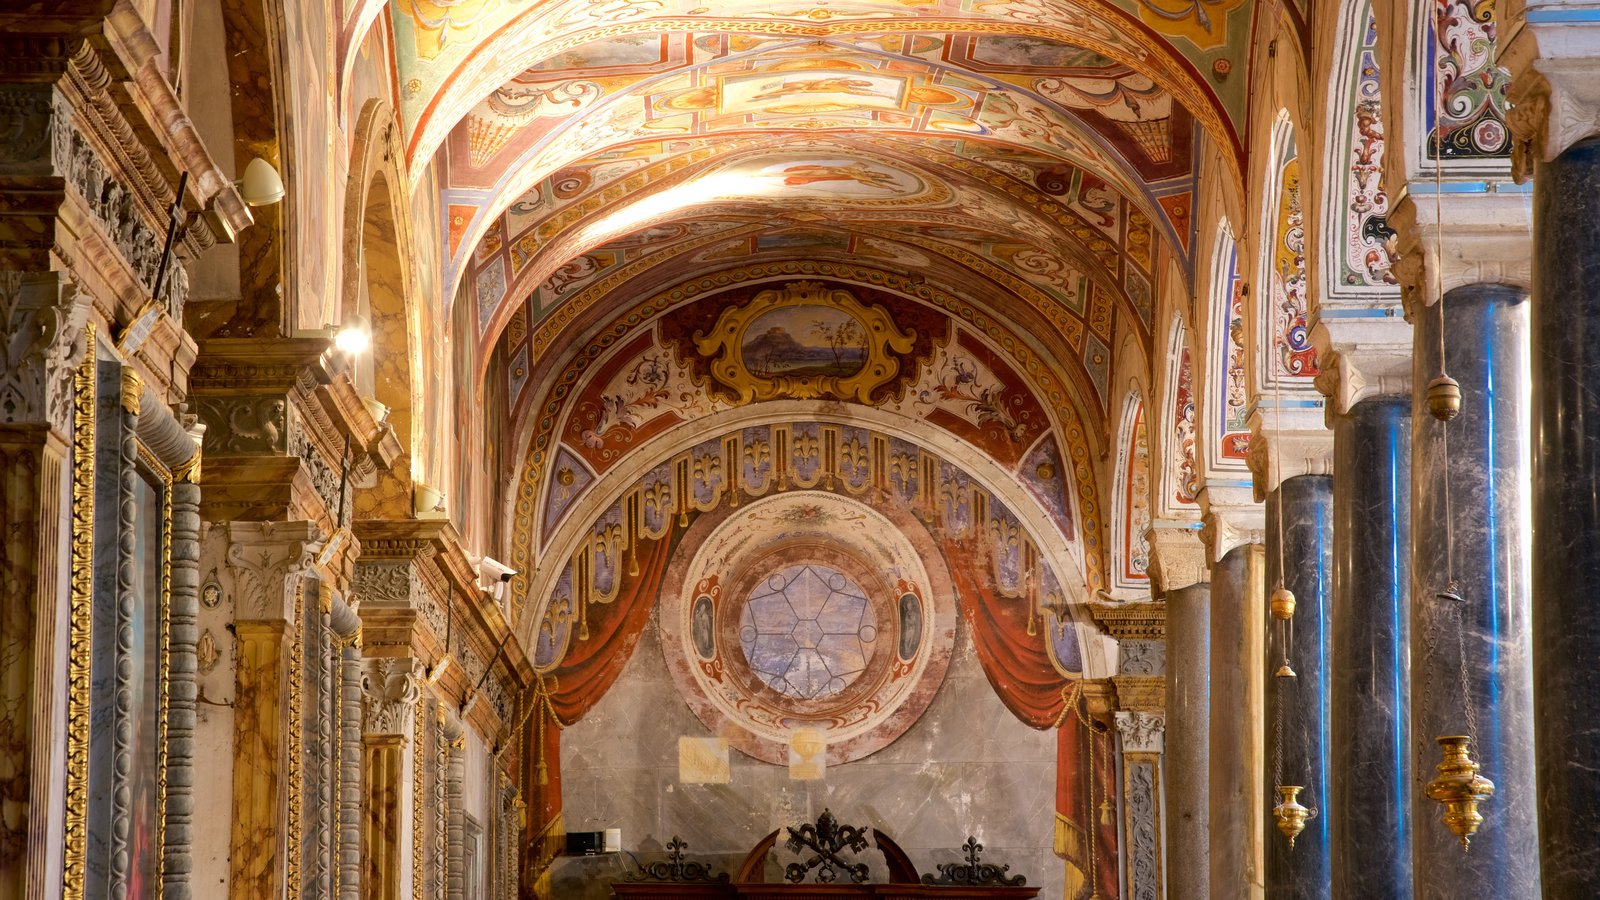 Basilica San Pietro showing interior views, heritage architecture and religious elements